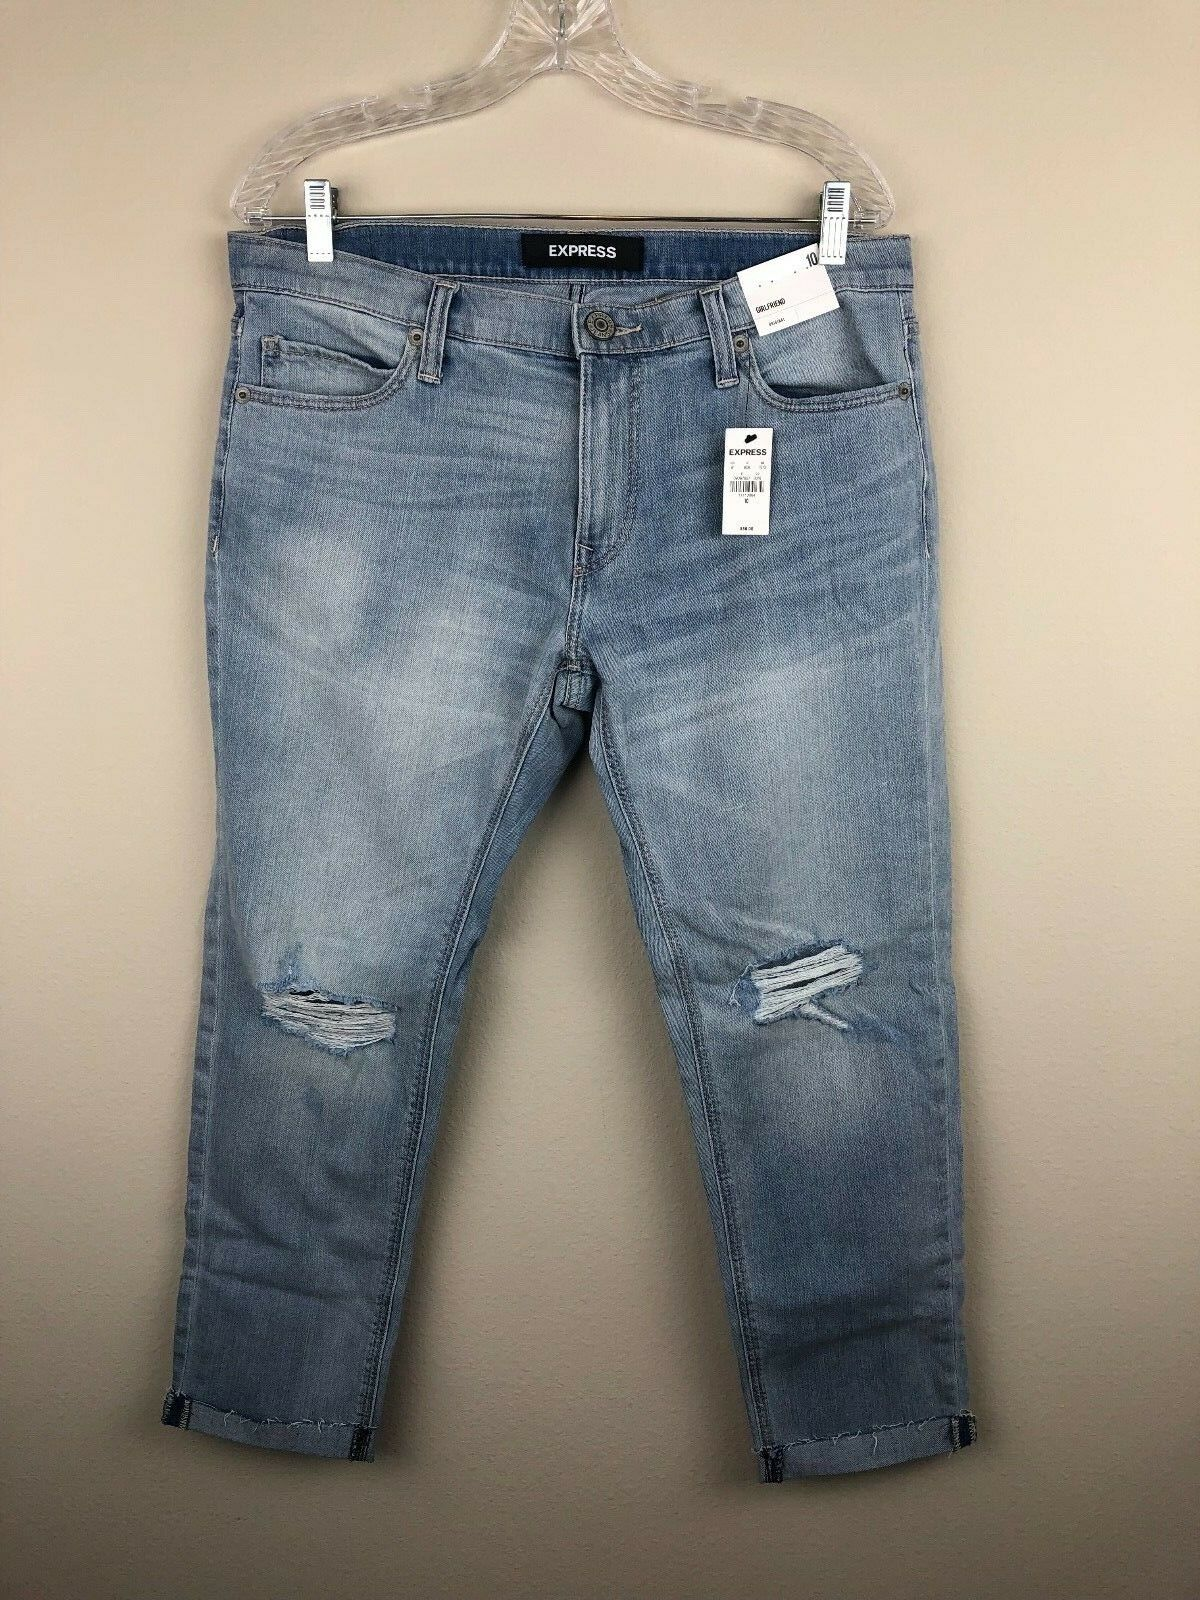 Express Jeans Womens Size 10R Girlfriend Fit Light Wash Cropped Ankle Distressed